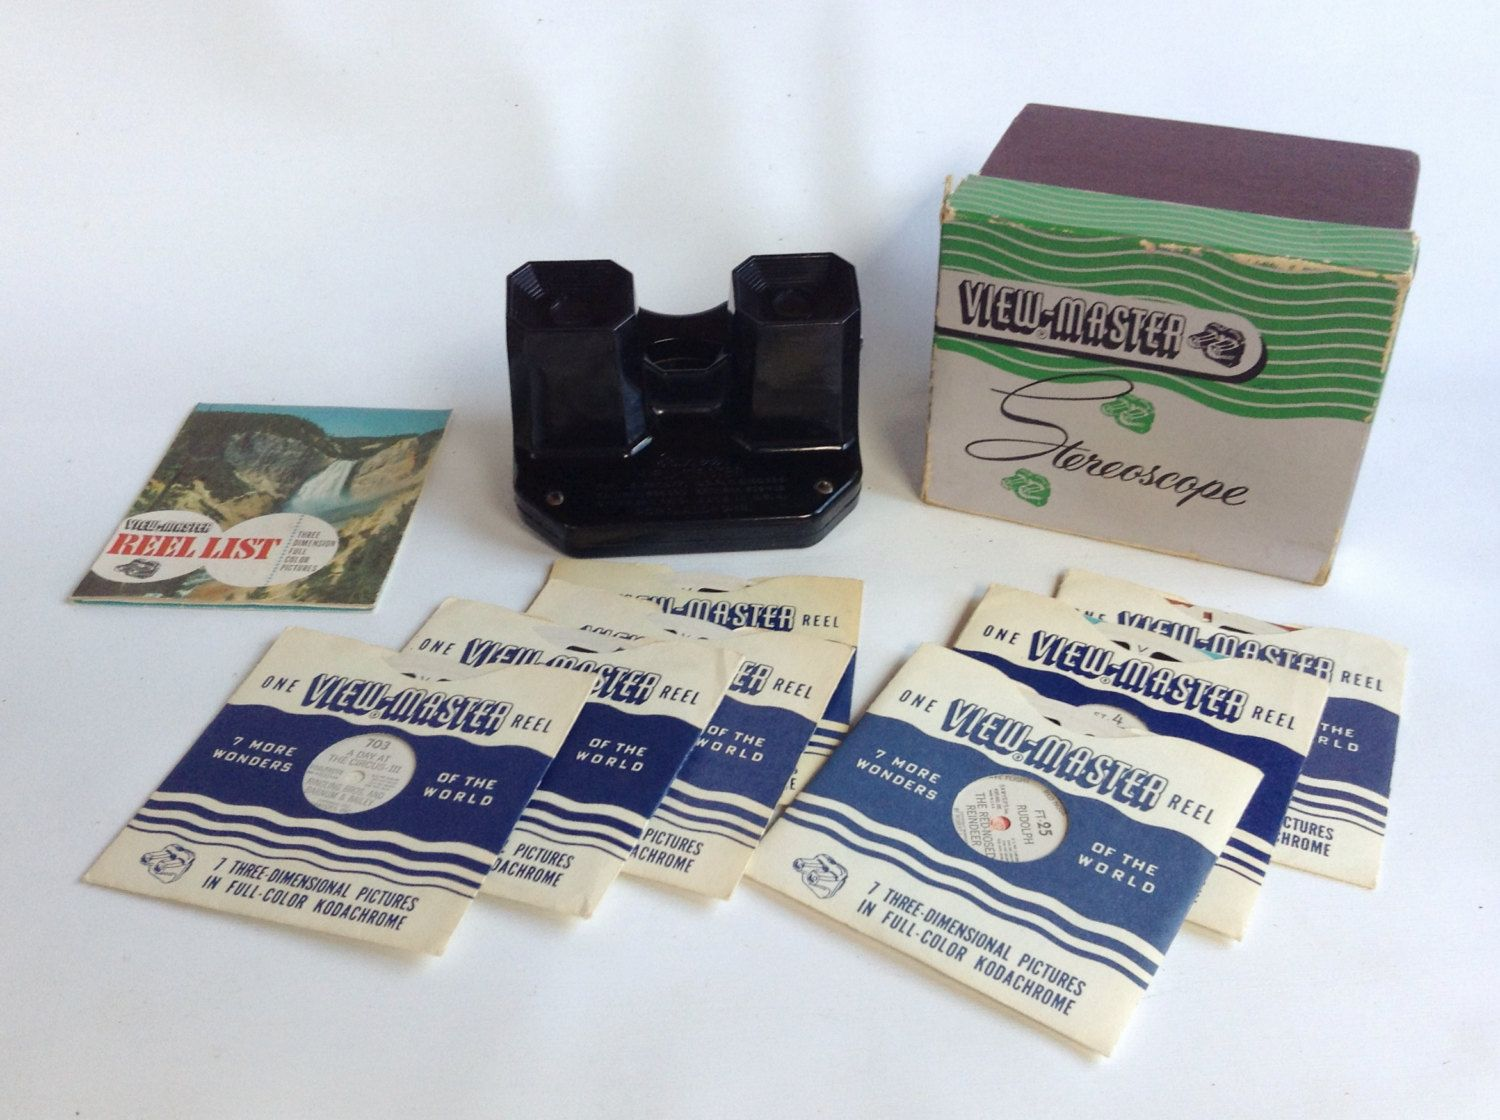 Vintage Sawyer's View Master Model C Stereoscope w/7 Picture Reels by ThoughtfulVintage on Etsy